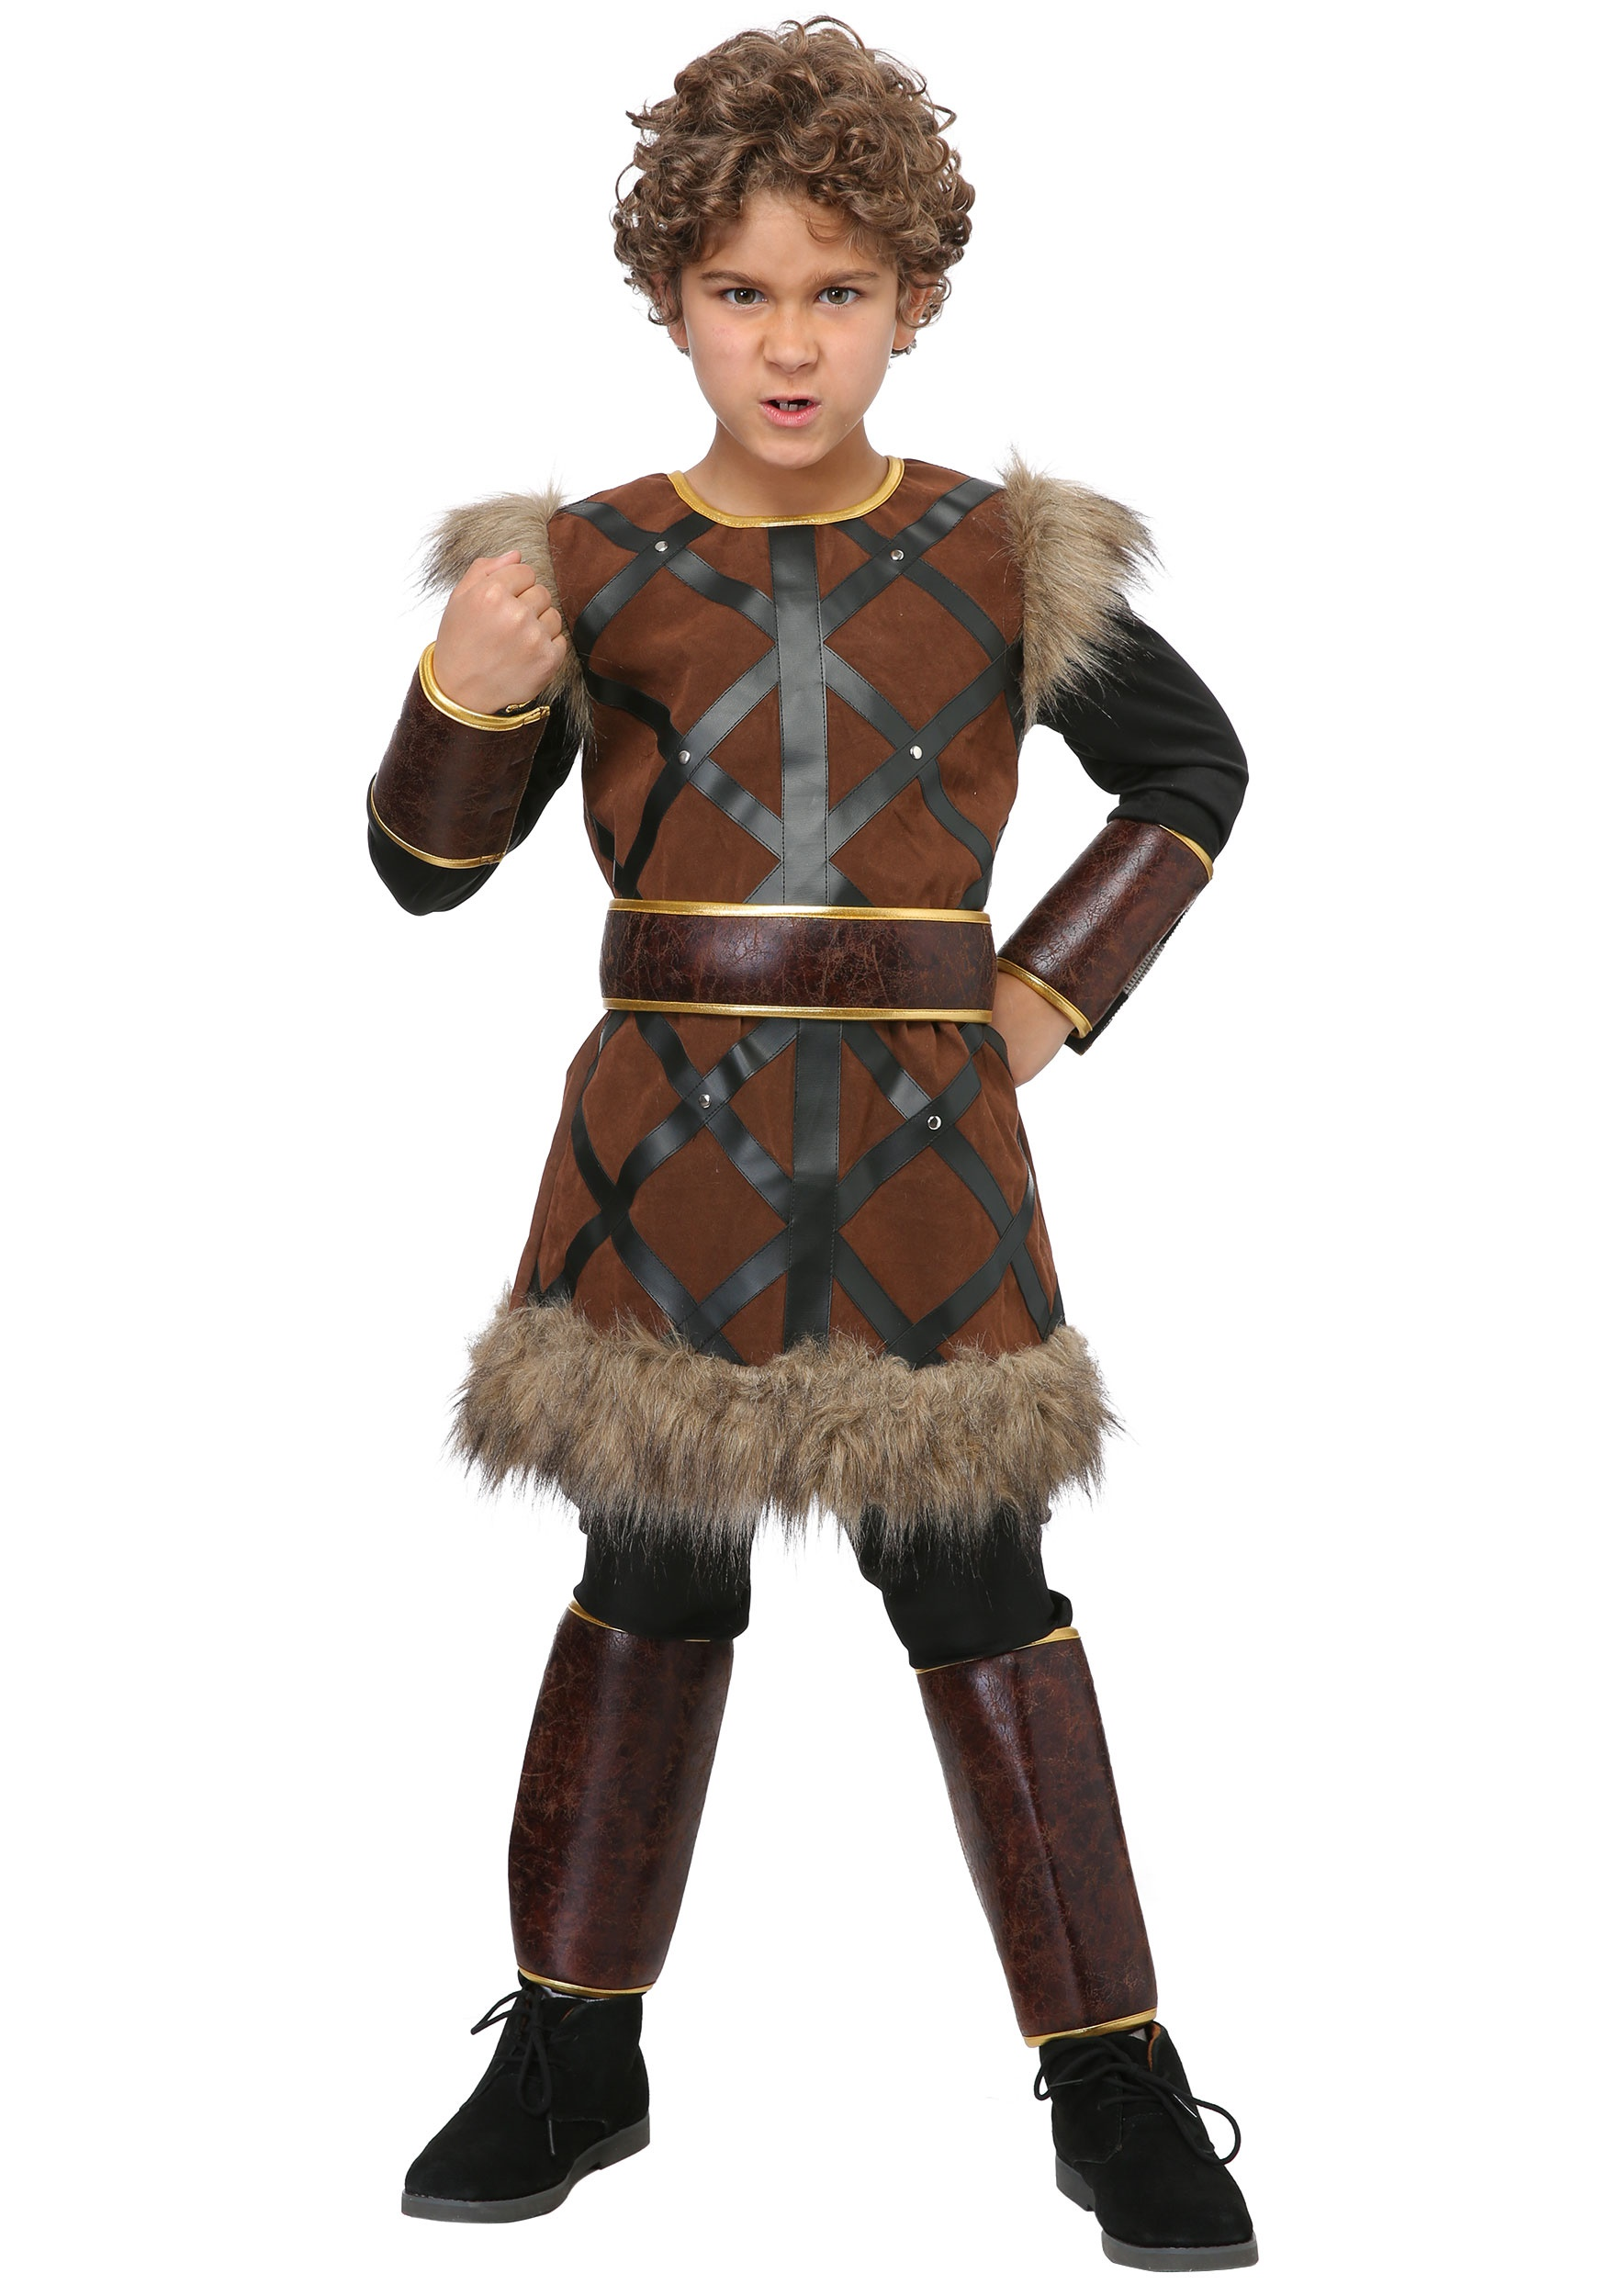 Fighting Viking Costume for Boys